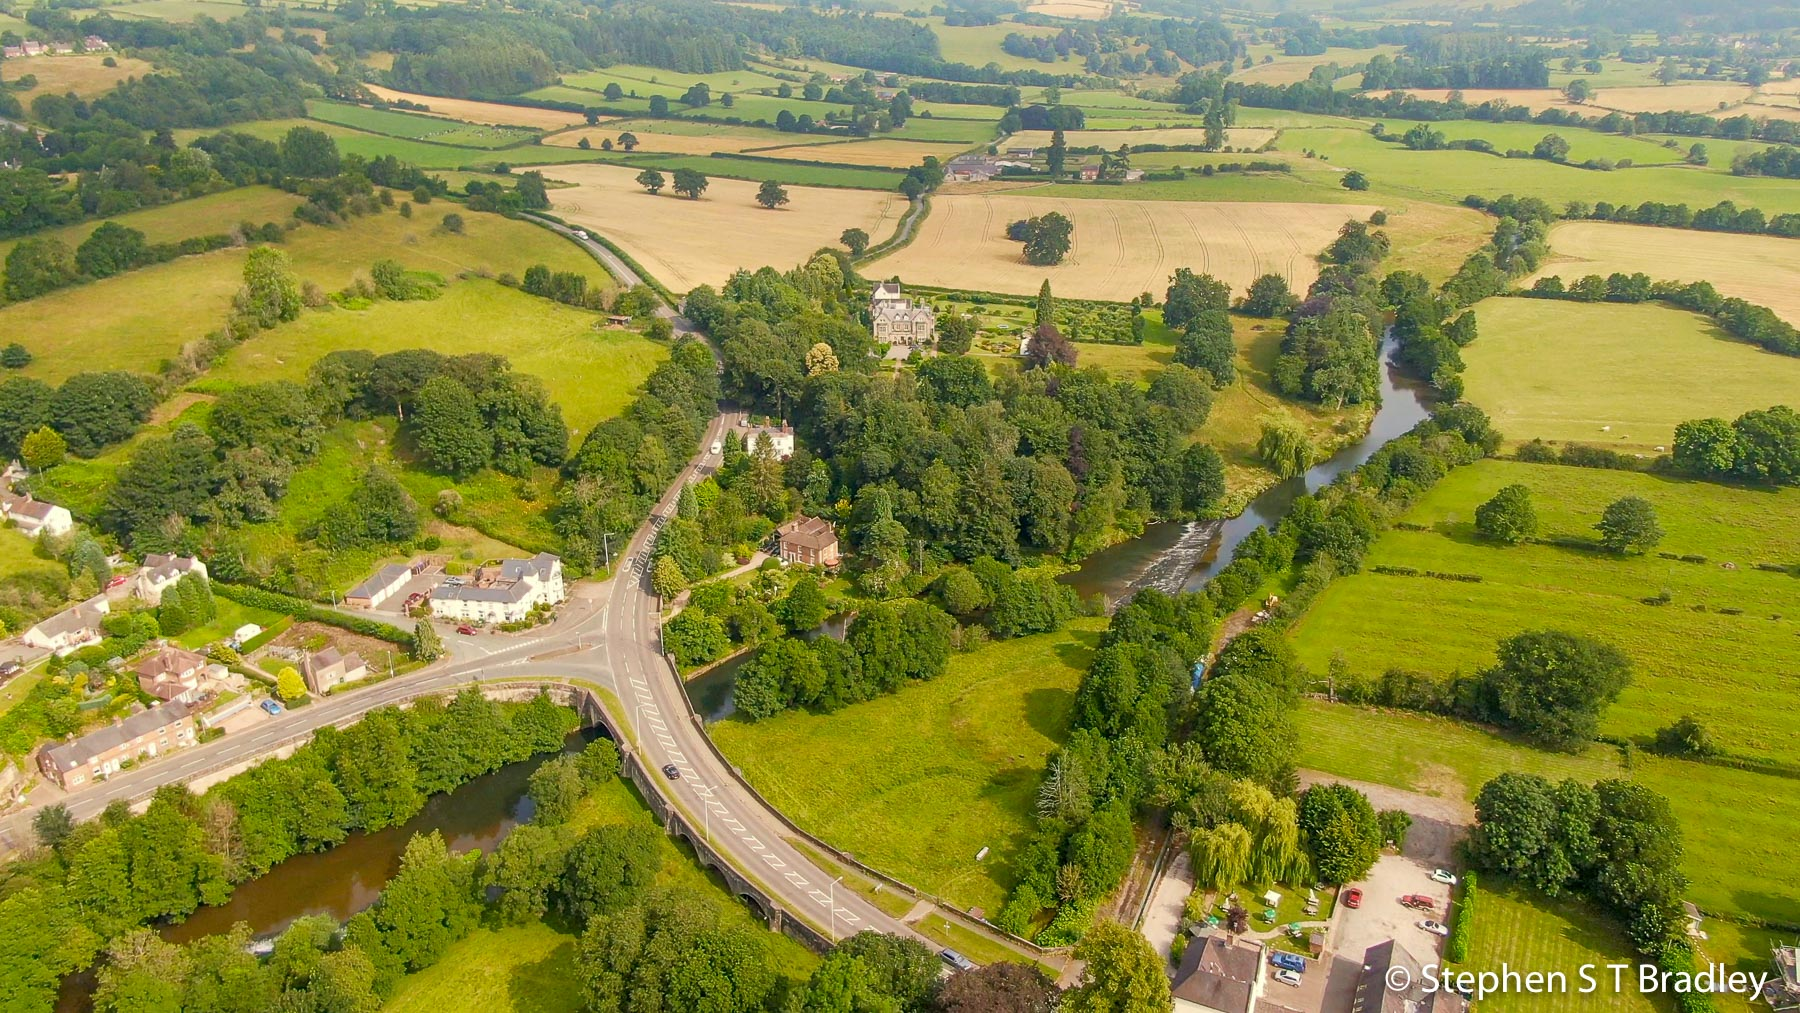 Aerial video of country house wedding at Birdsgrove, Derbyshire, UK, by Stephen S T Bradley - aerial drone photographer and video production services in Dublin and throughout Ireland. Screenshot reference 1